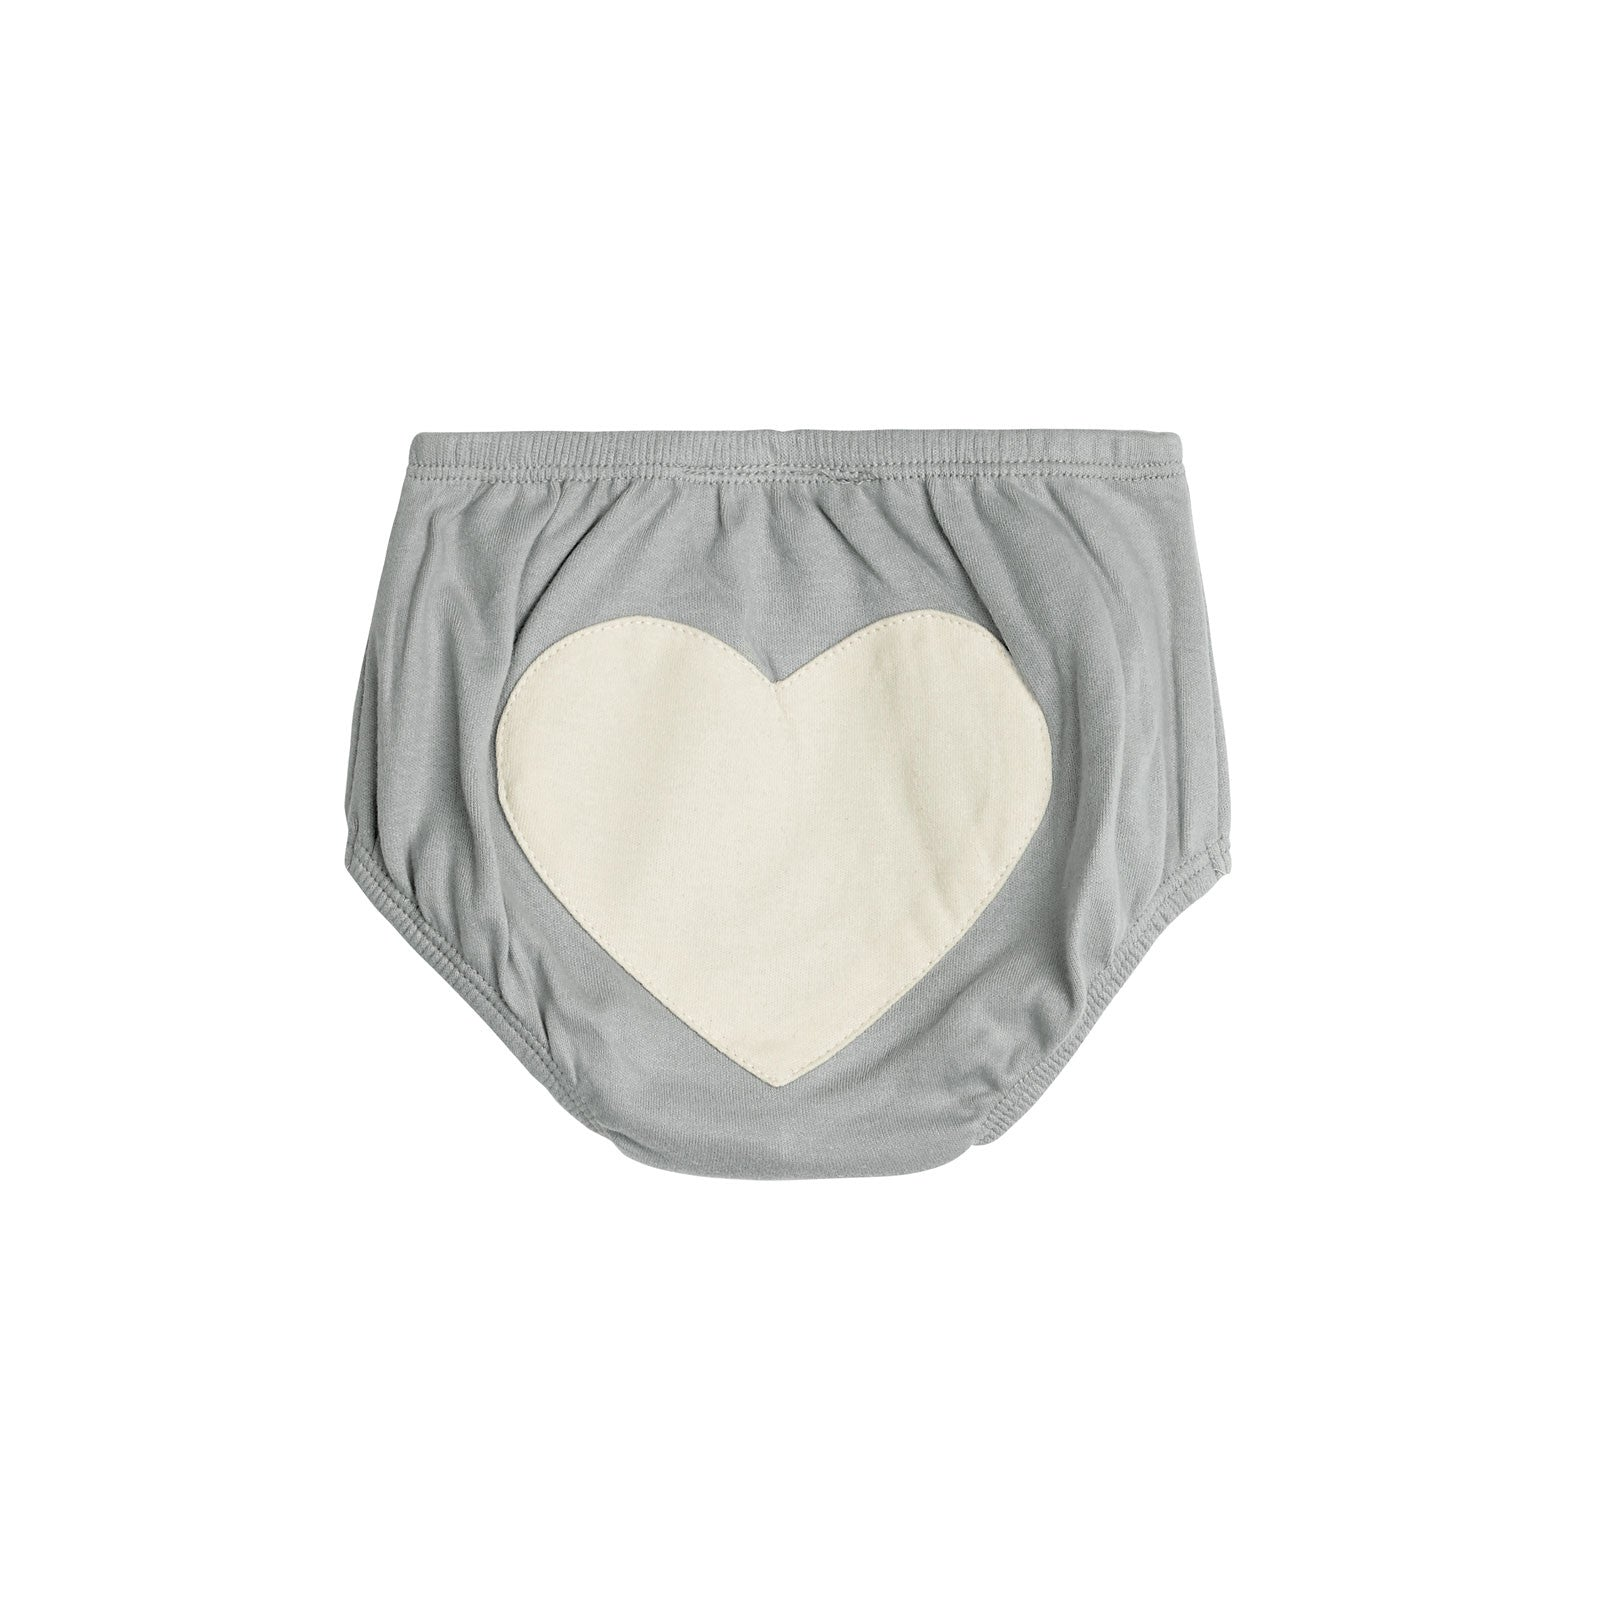 Sapling Child Essentials Heart Bloomers  3-6M / Dove Grey - Sapling Child - Little Earth Nest - 5